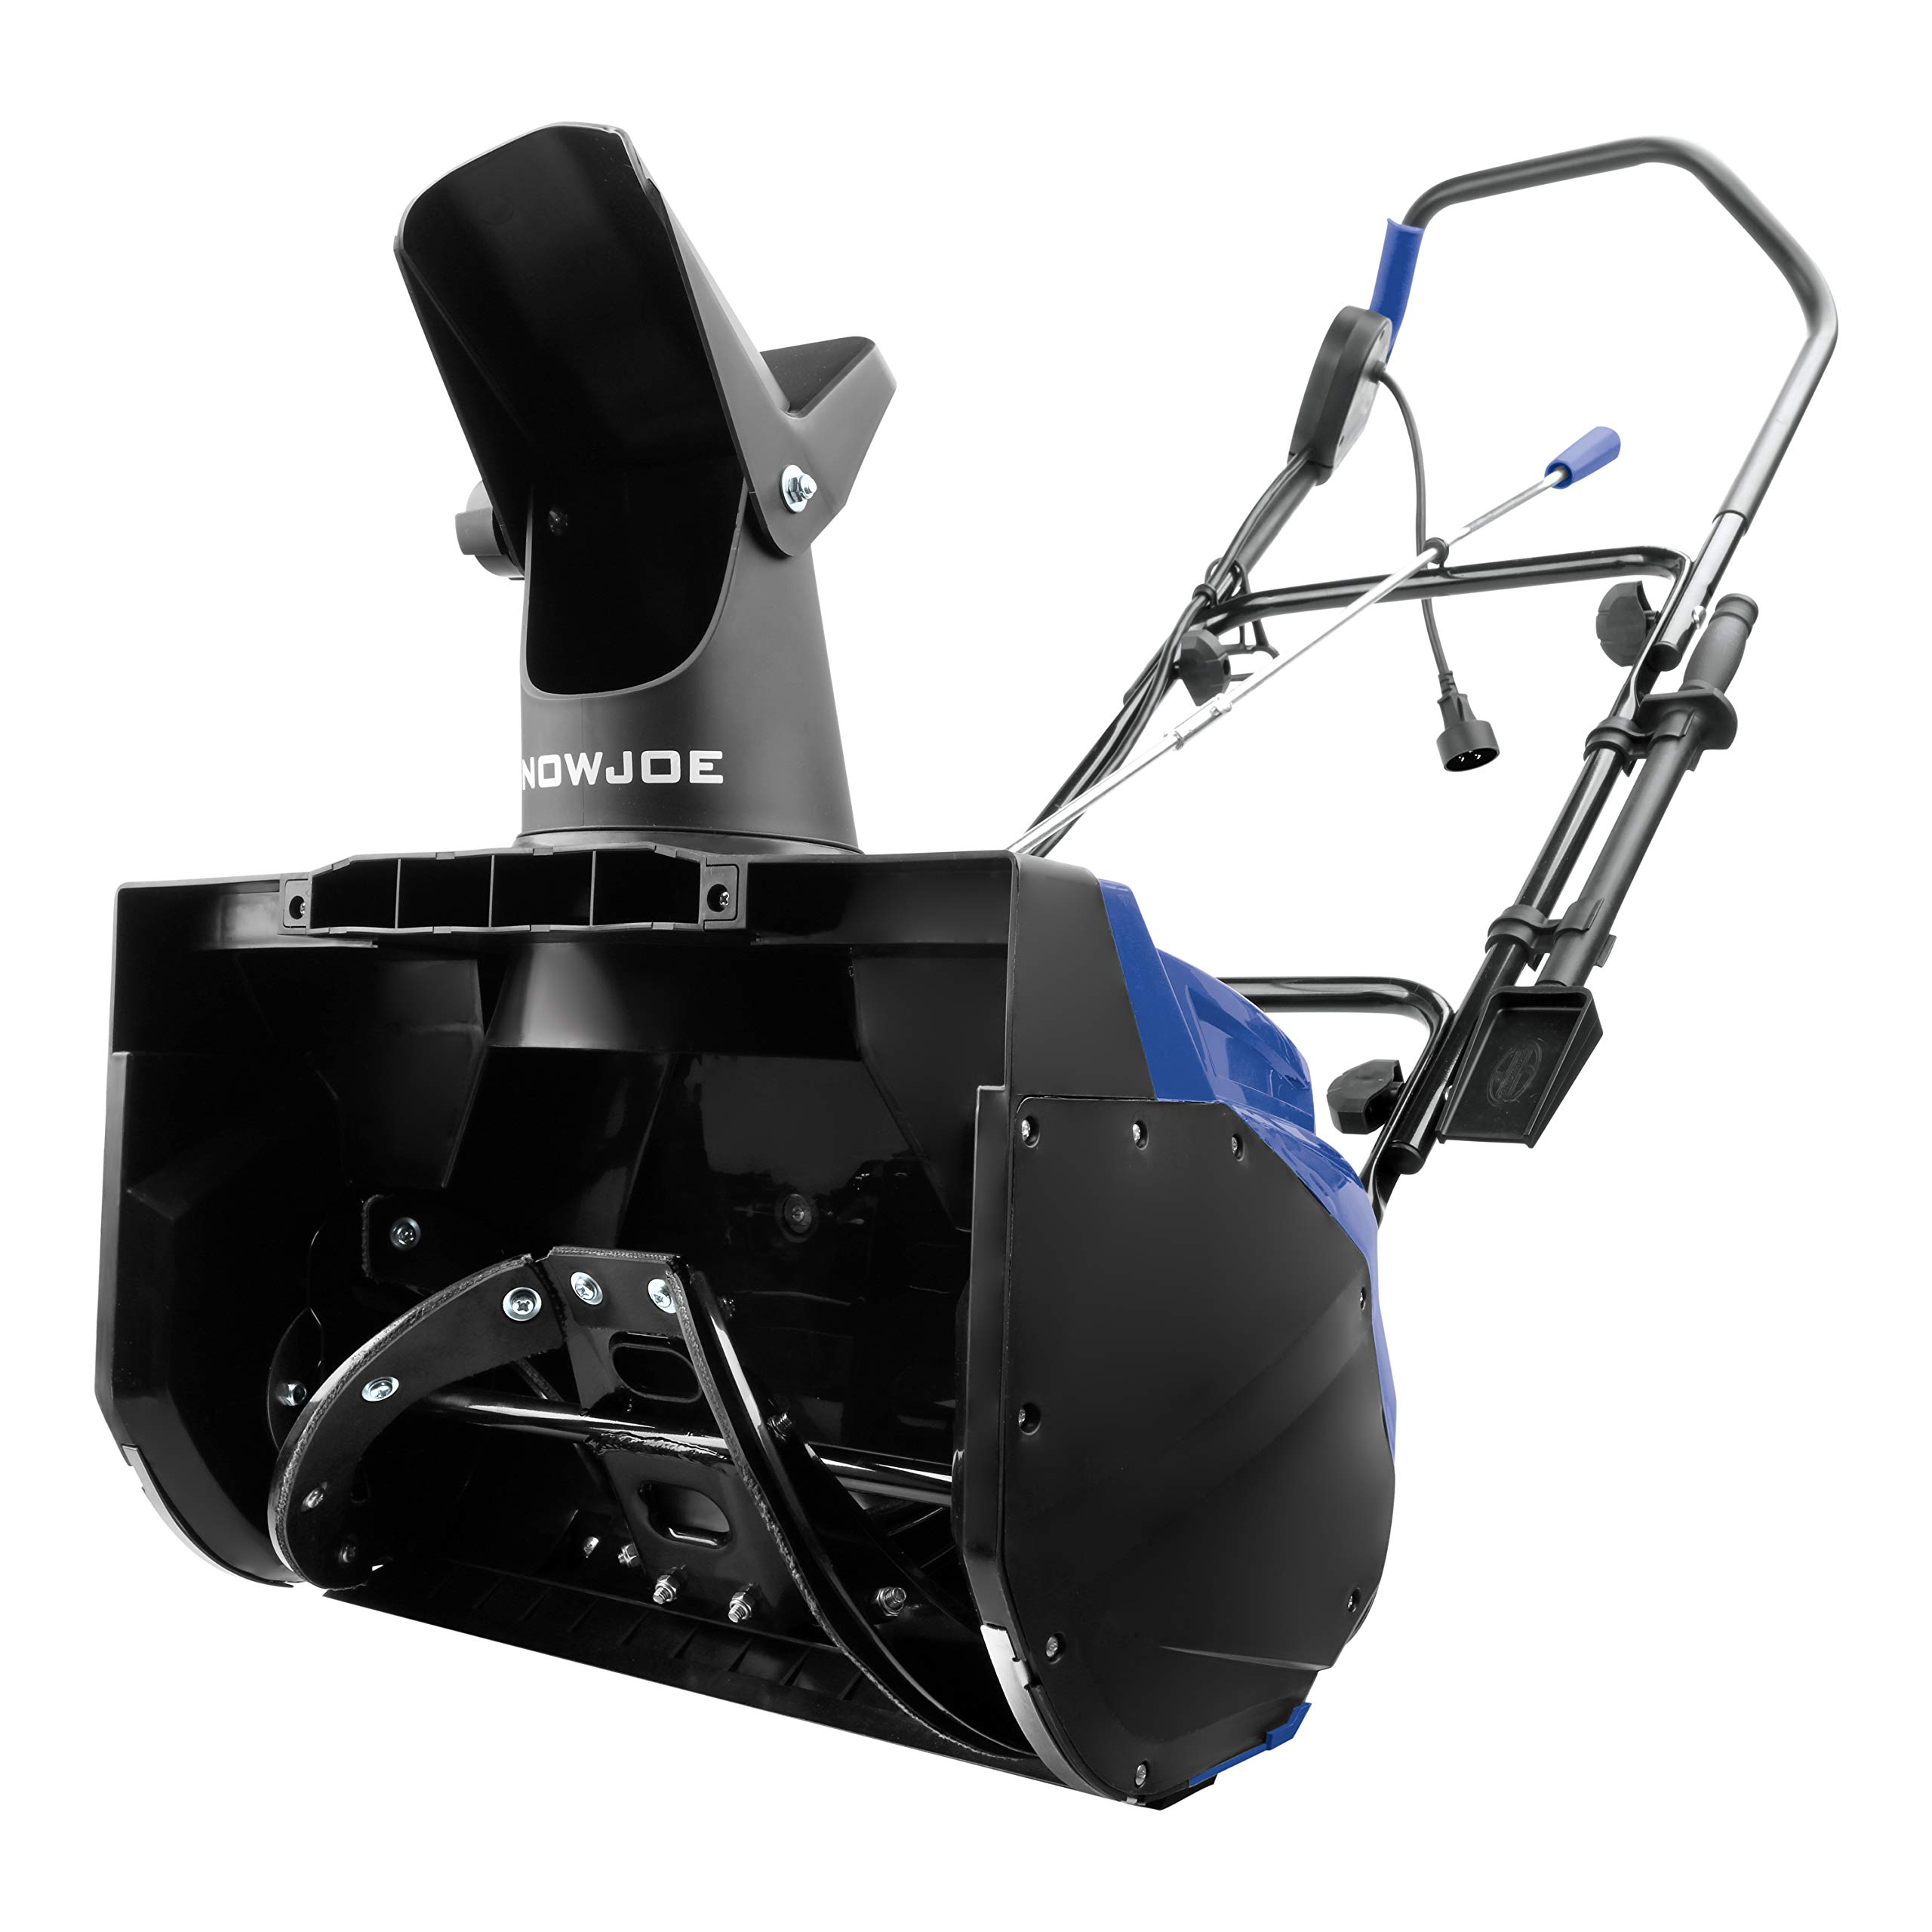 Snow Joe SJ622E 18-Inch 15 Amp Electric Single Stage Snow Thrower by Snow Joe